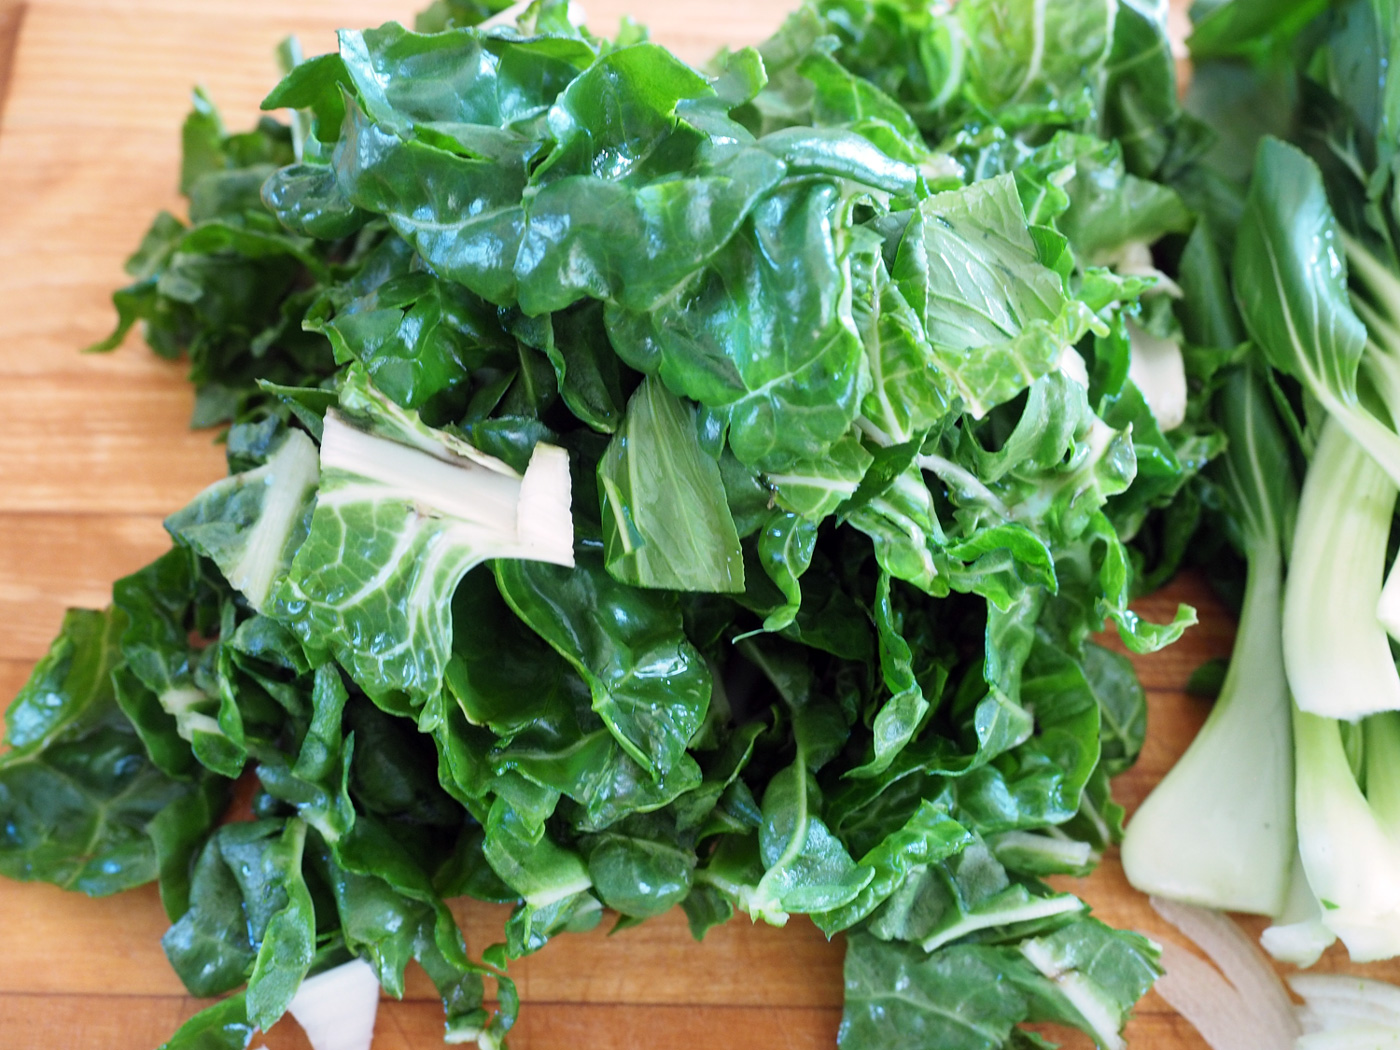 Look at the vibrancy of that chard!